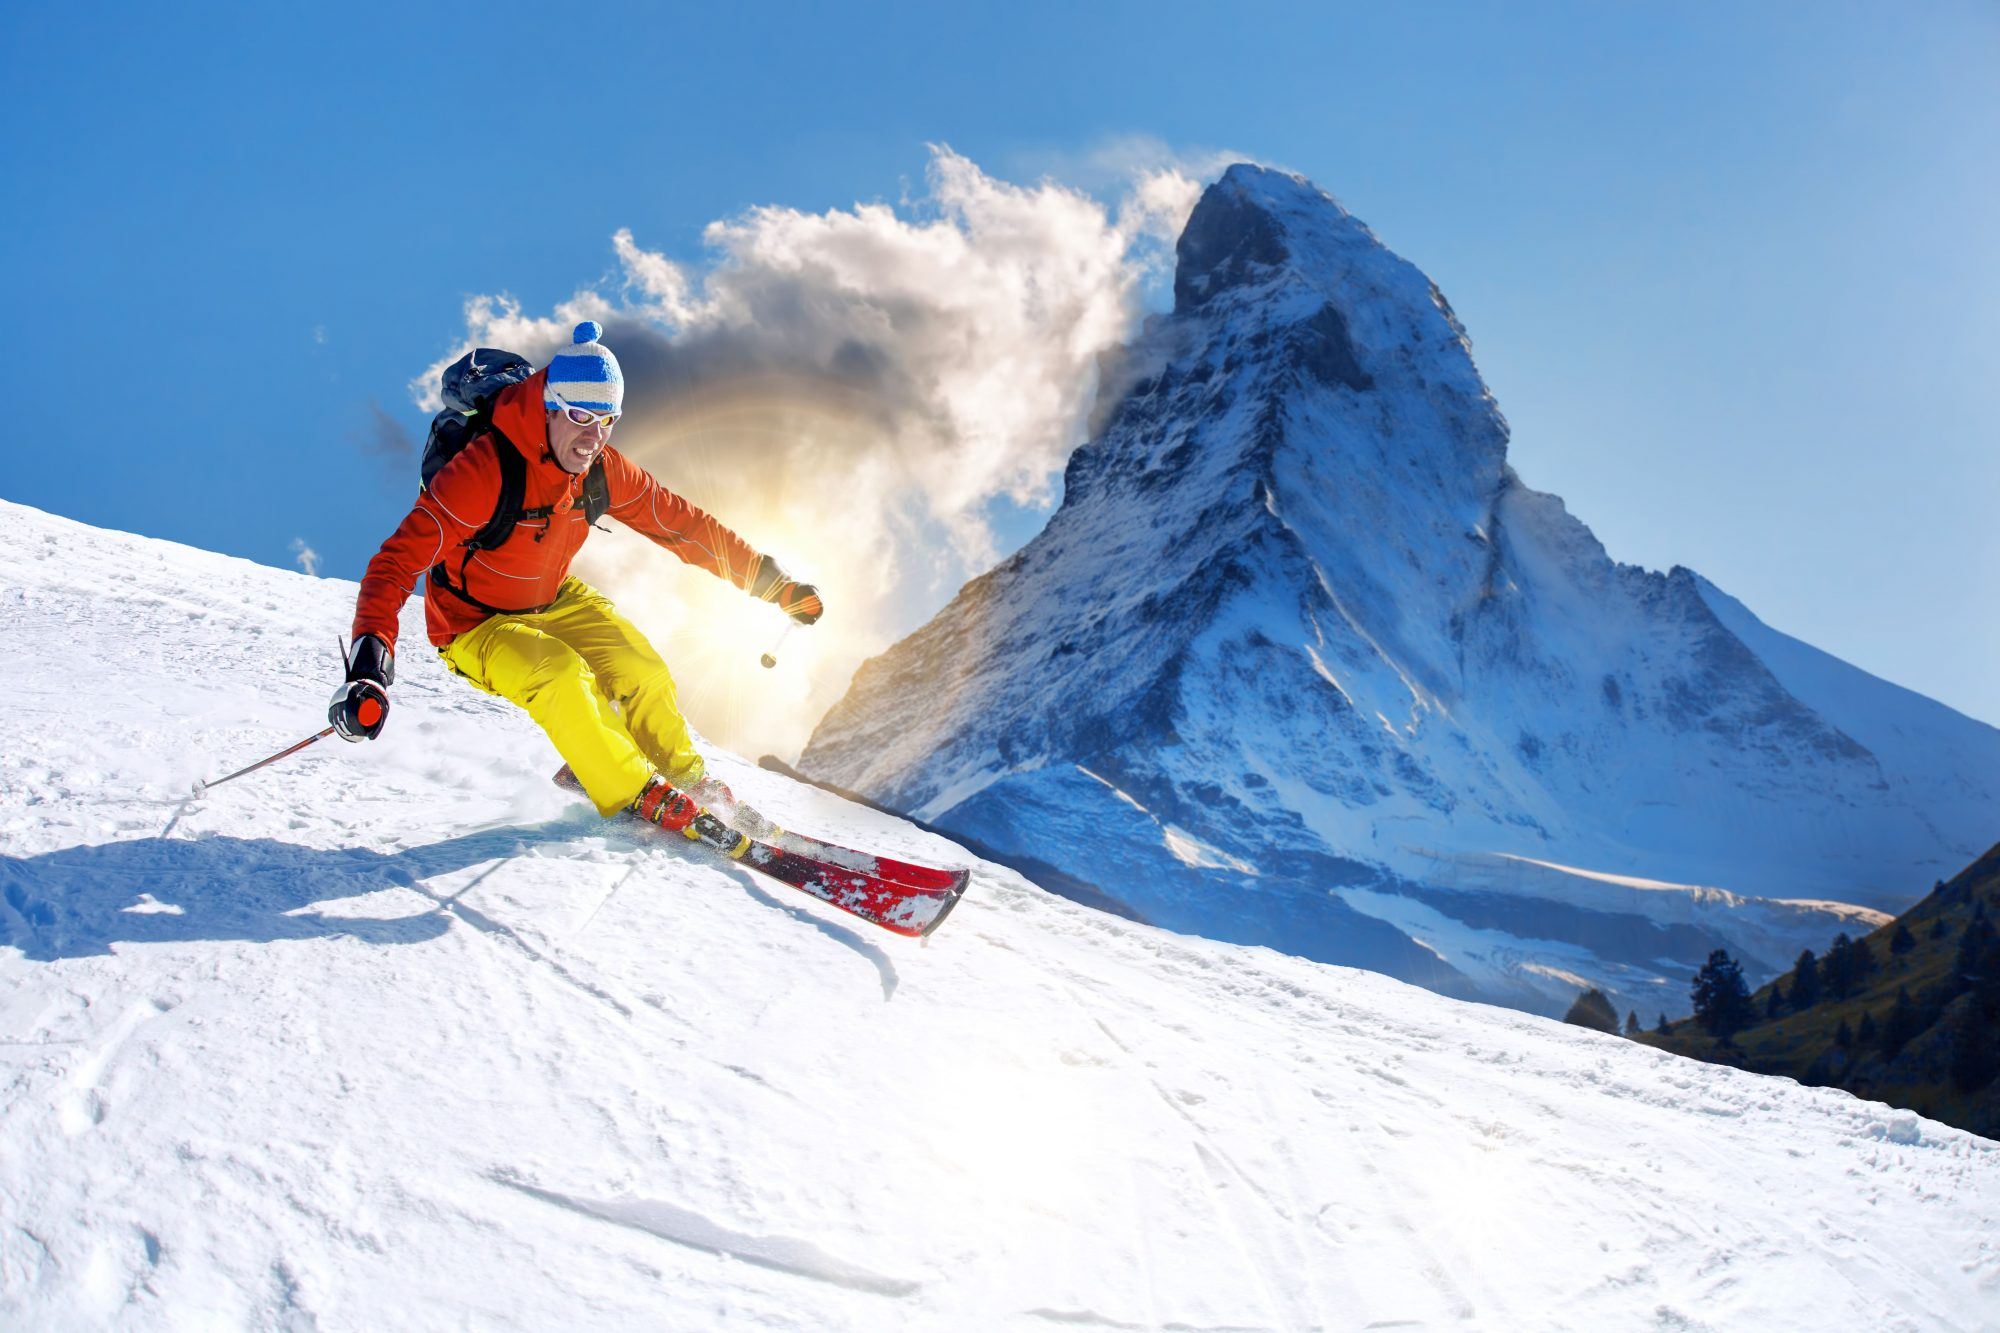 Skier going downhill, with Matterhorn in the background.